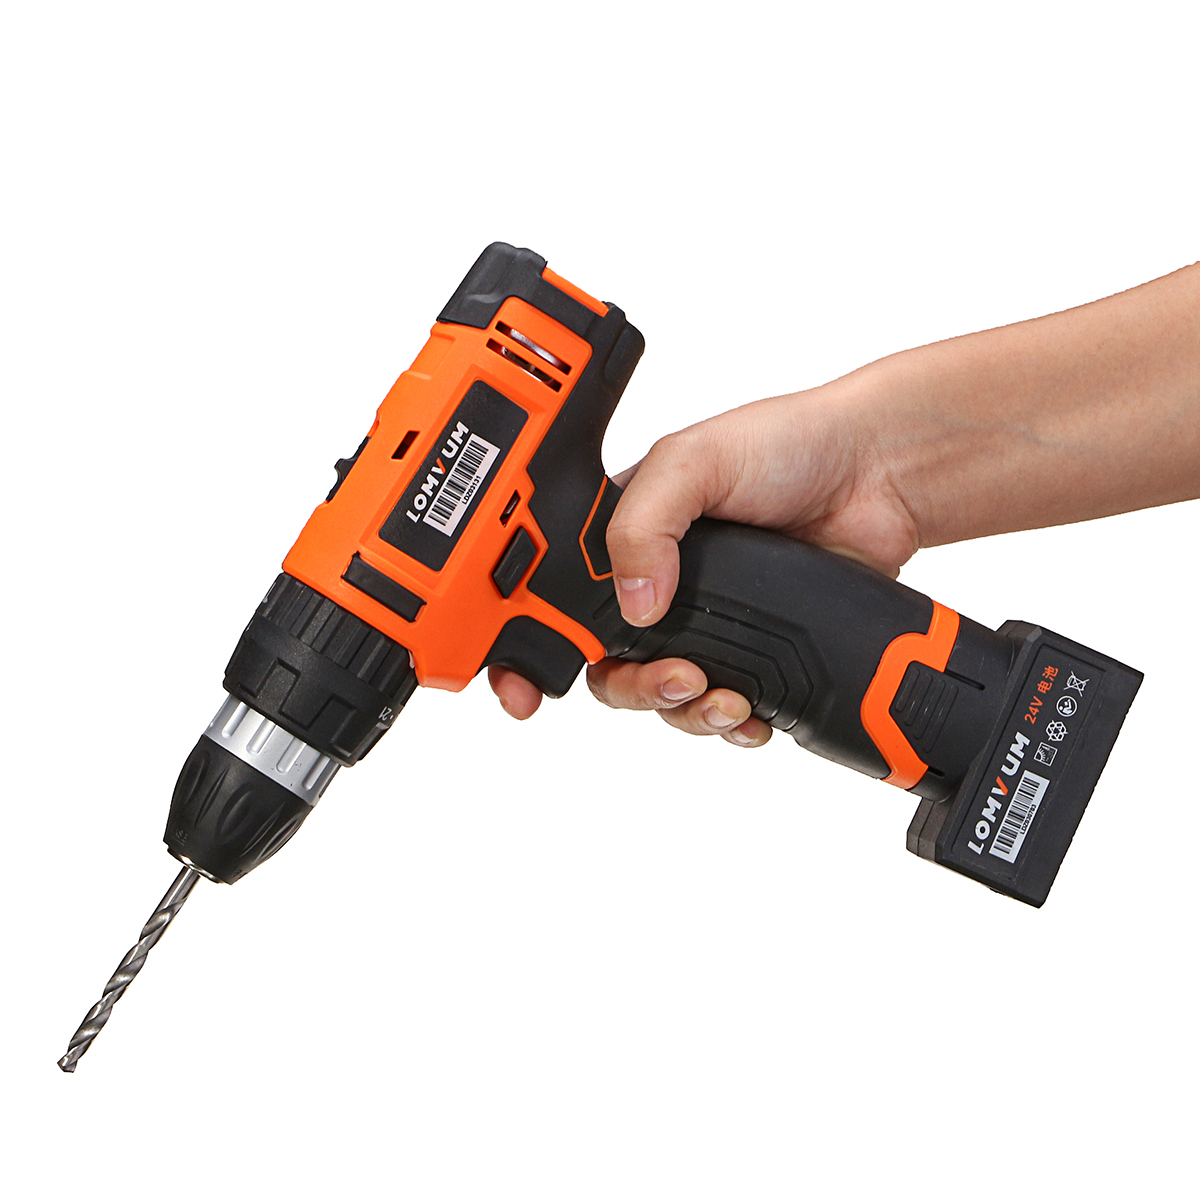 24V Electric hammer Electric Wrench Impact Socket Wrench drill function Cordless hand drill Screwdriver Power Tools цена